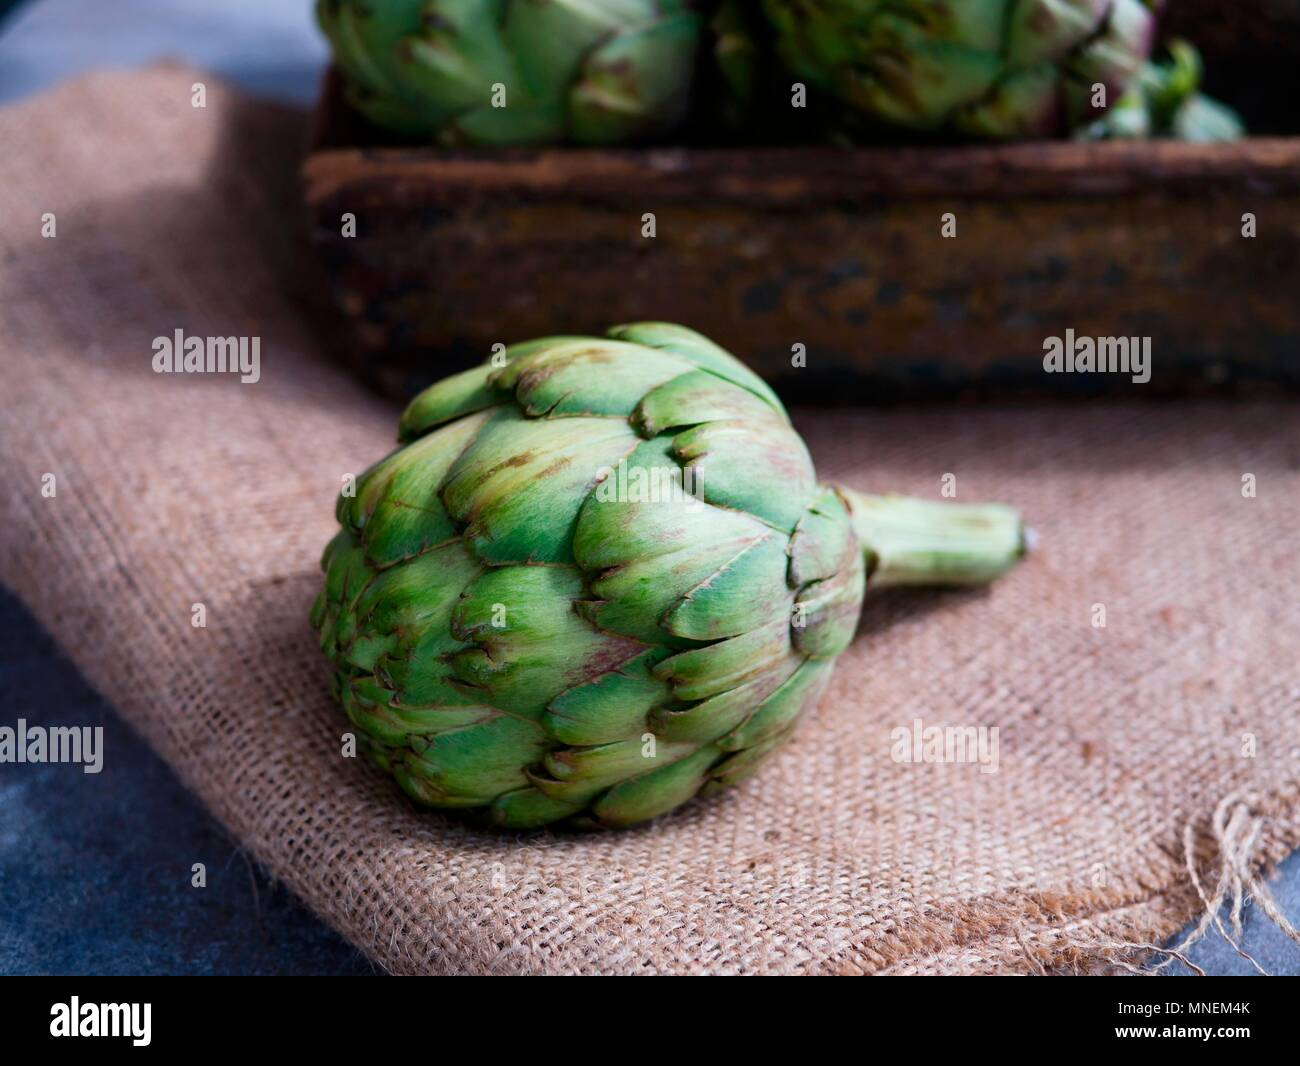 Fresh artichoke on sackcloth - Stock Image